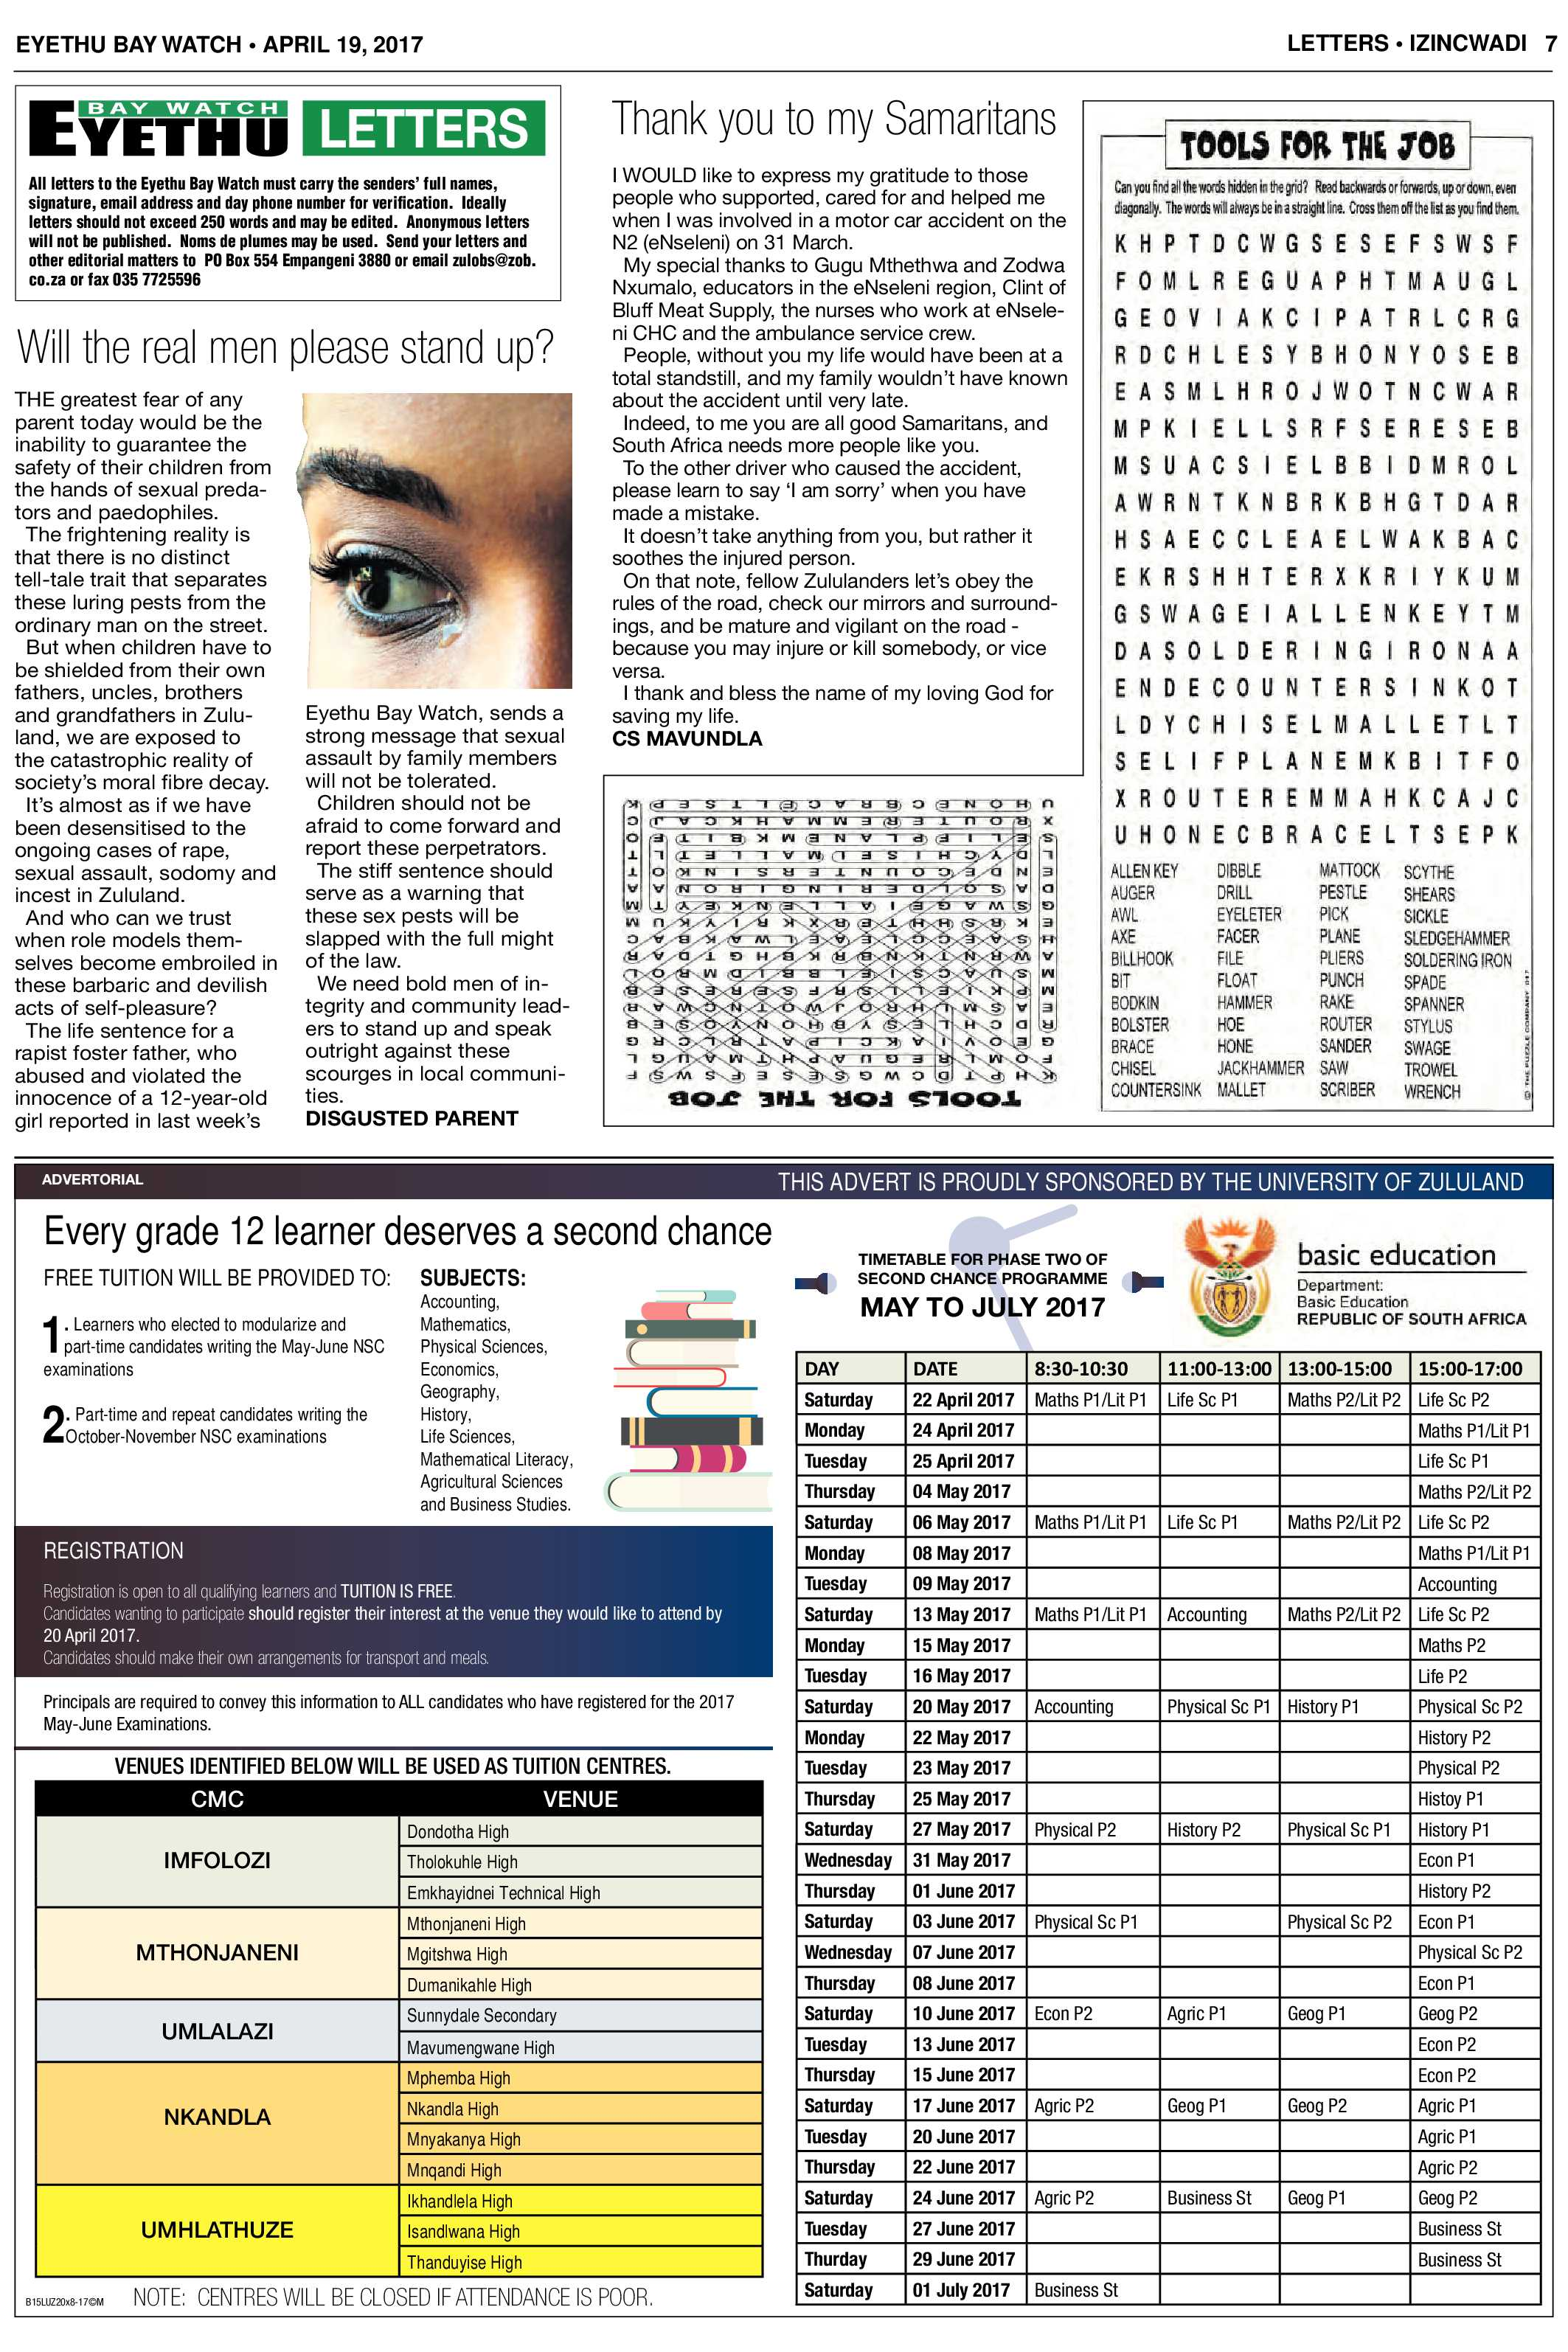 eyethu-baywatch-19-april-epapers-page-7